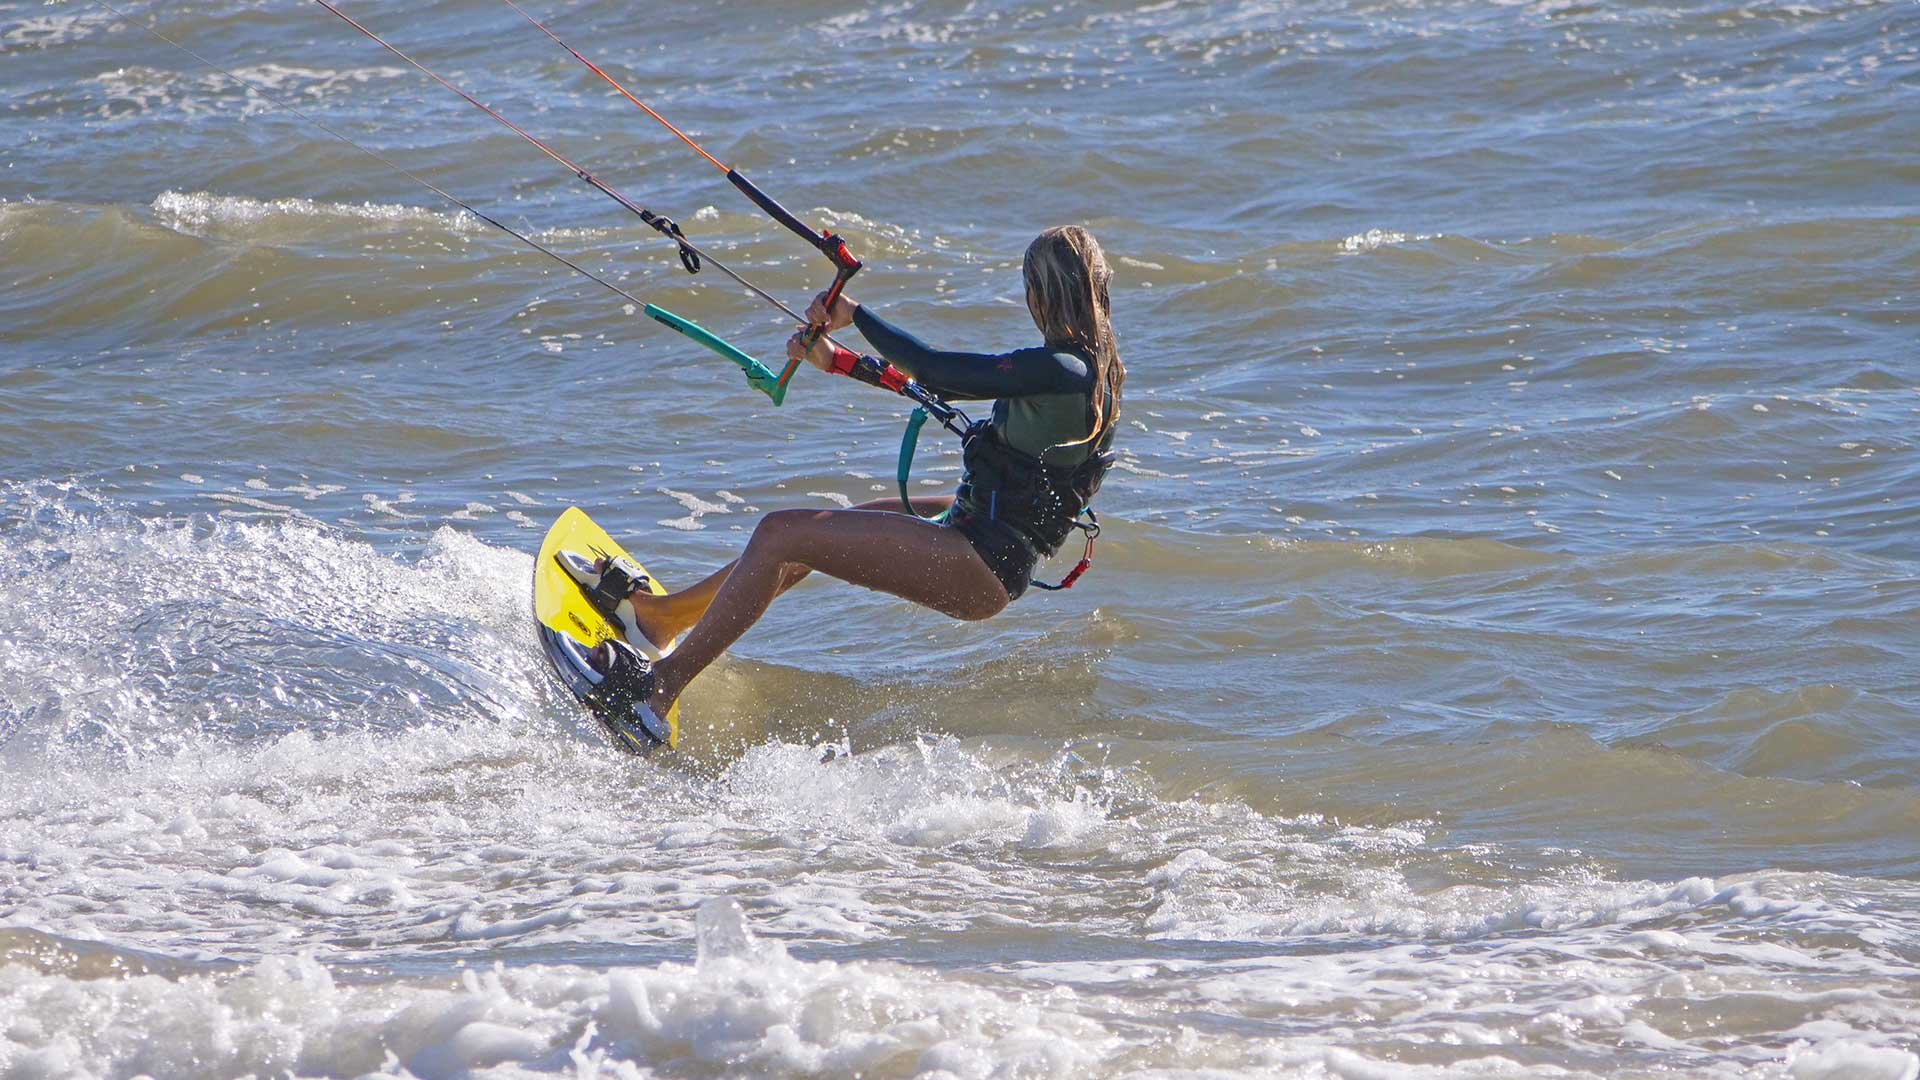 latina-foce-verde-kite-surf-01